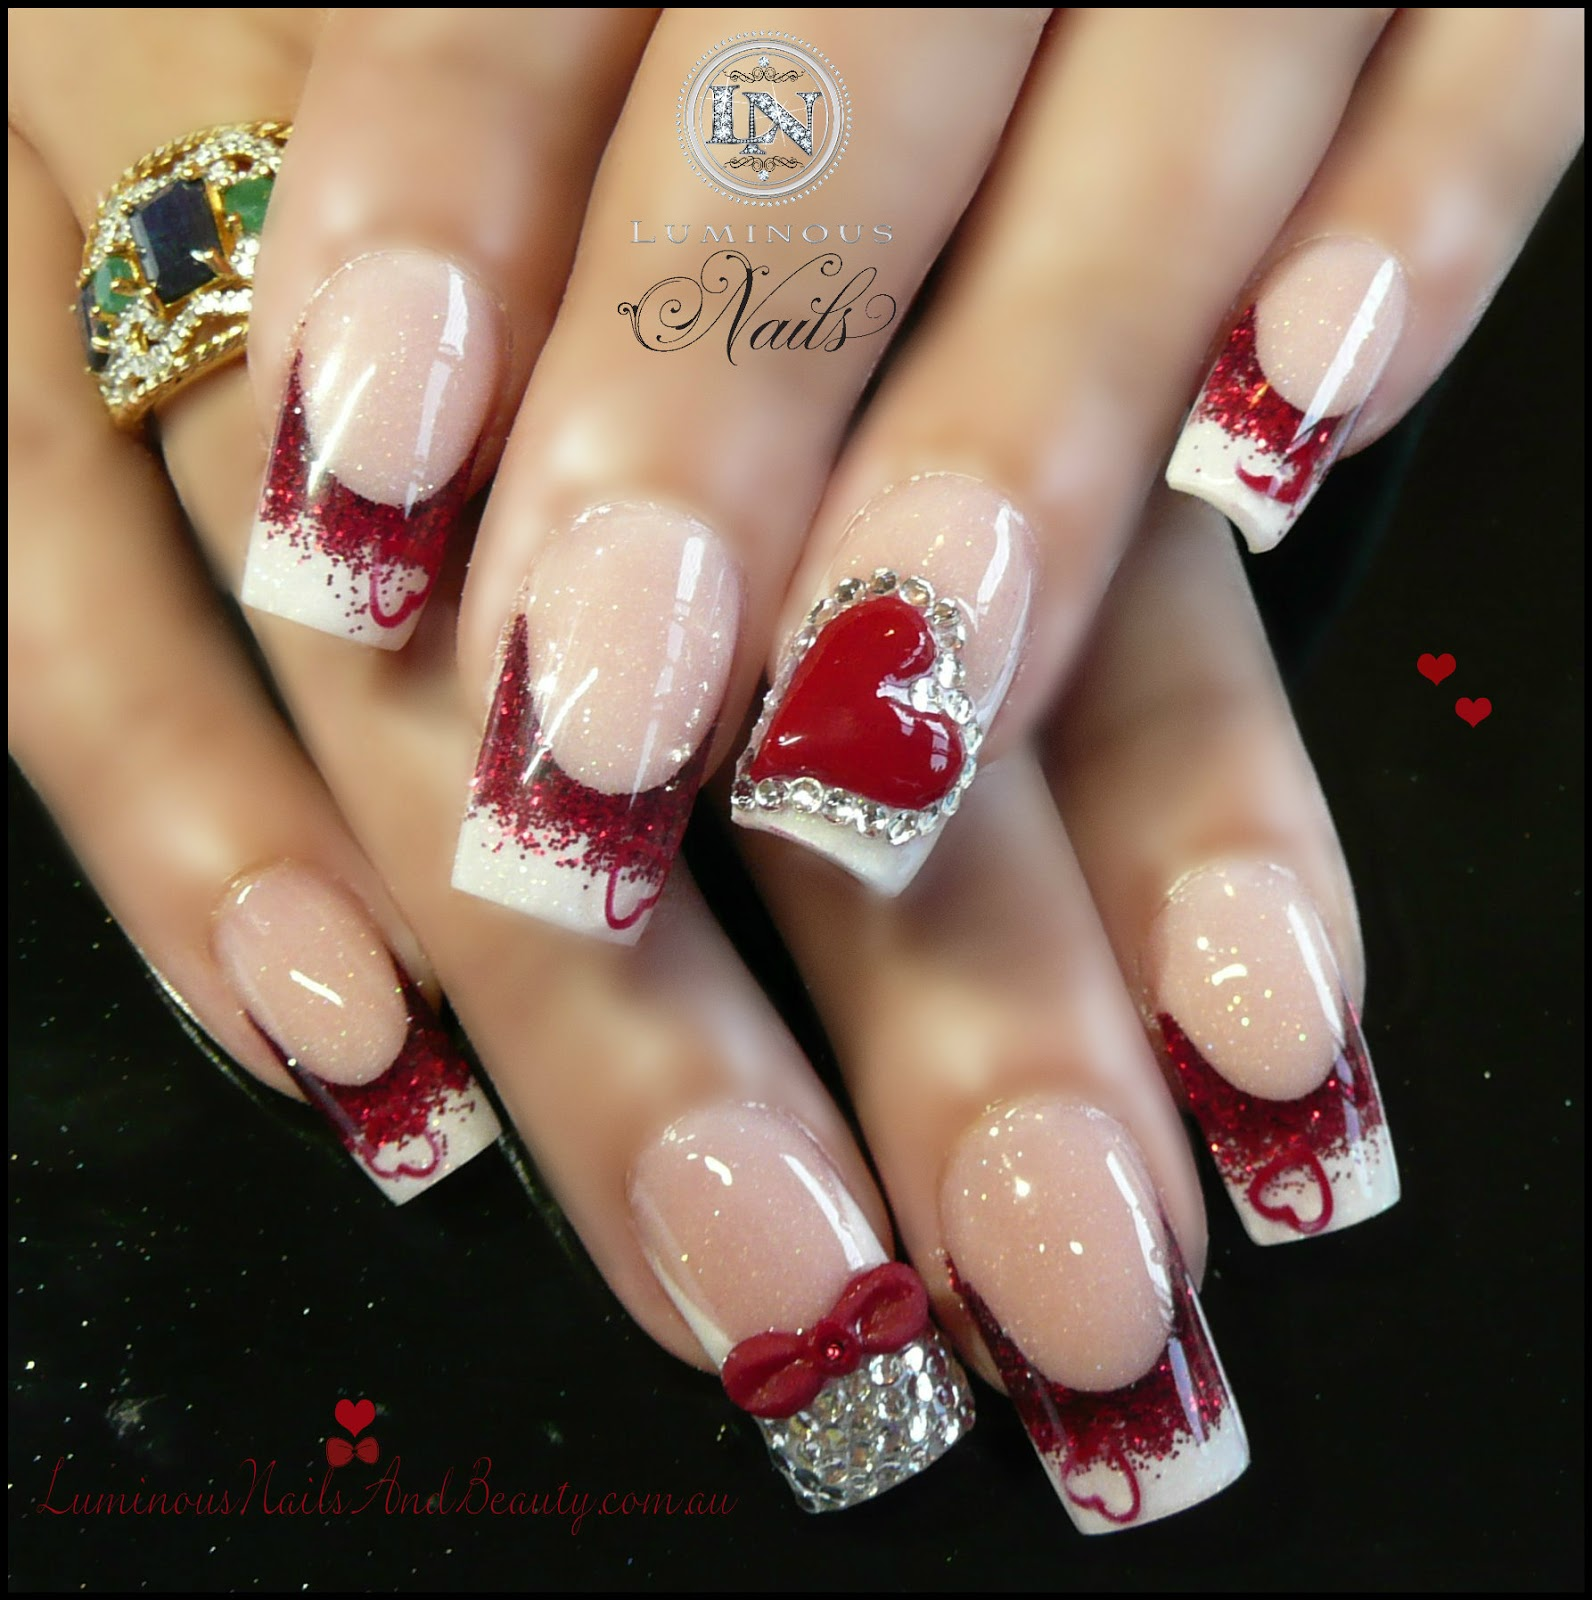 French Manicured Valentine's Day Design - 30+ Awesome Acrylic Nail Designs You'll Want In 2016